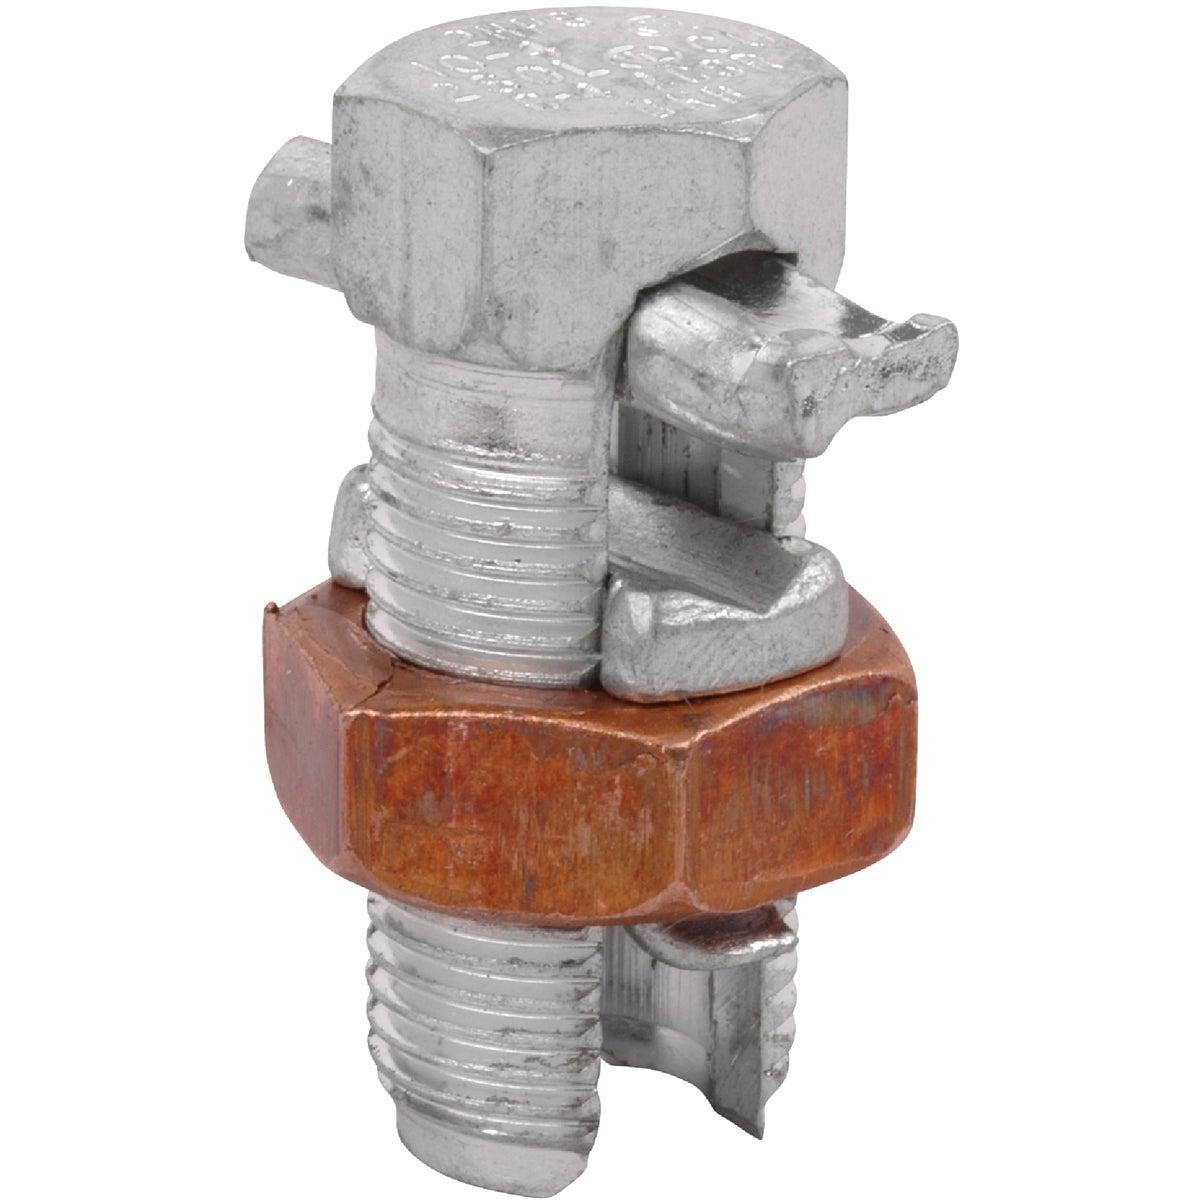 SPLIT BOLT CONNECTOR - E2HPS25 by Thomas & Betts